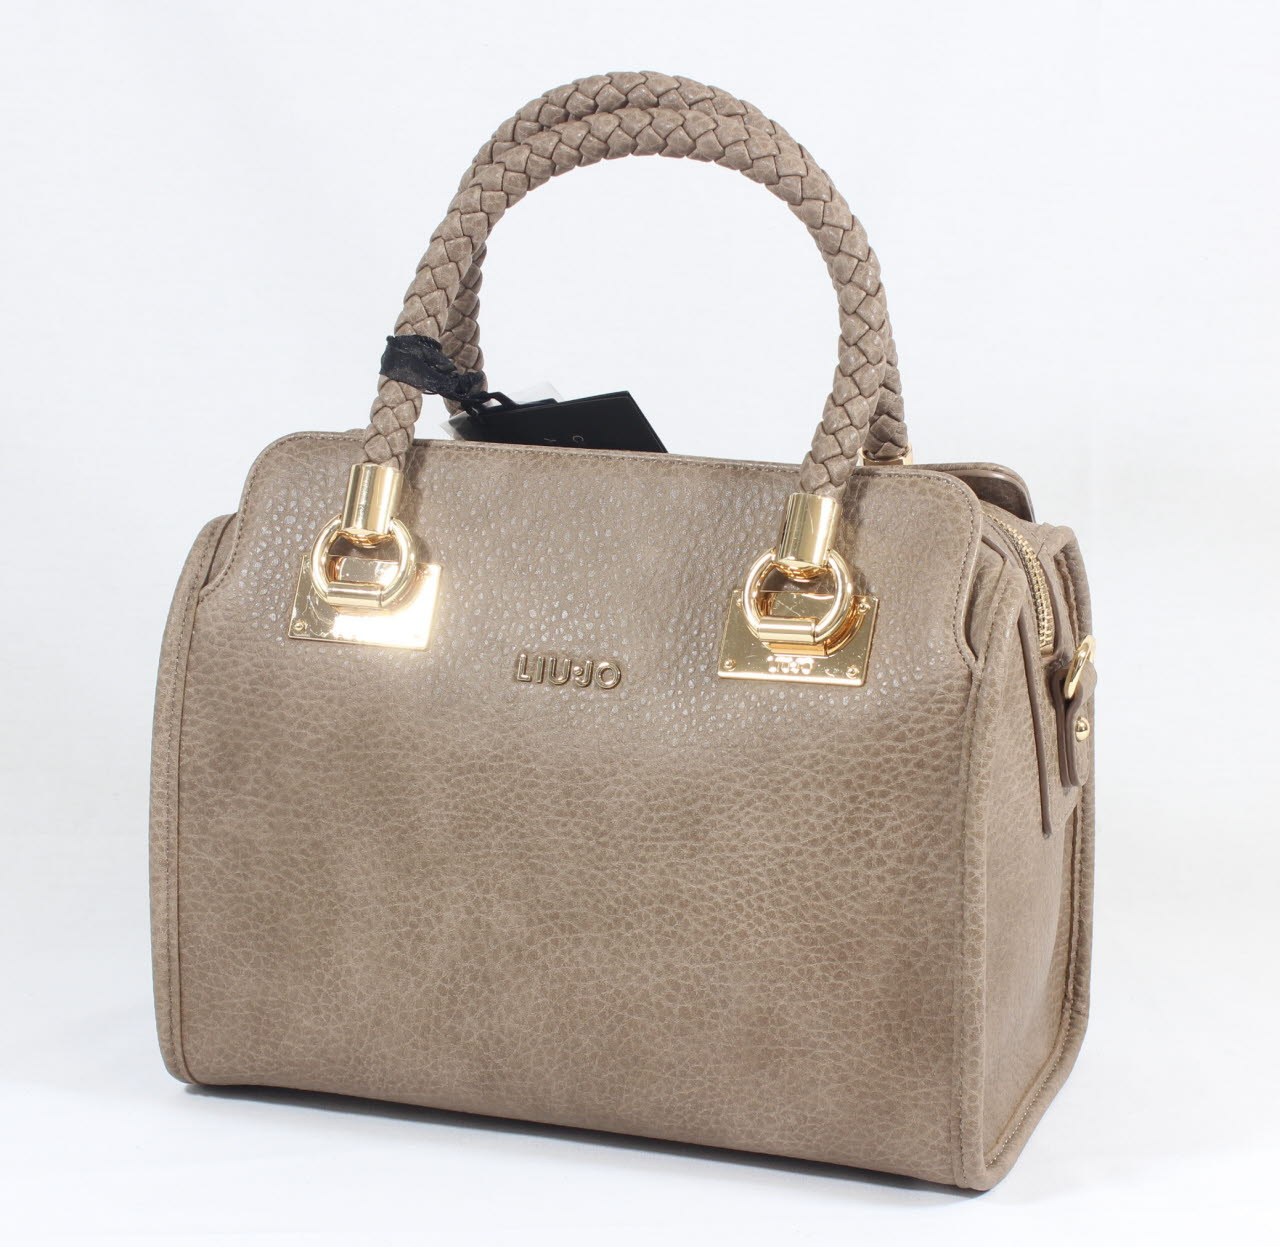 LIU JO bauletto new anna H 25  L 29  P 13 beige Leather goods others ... 730218e3d94